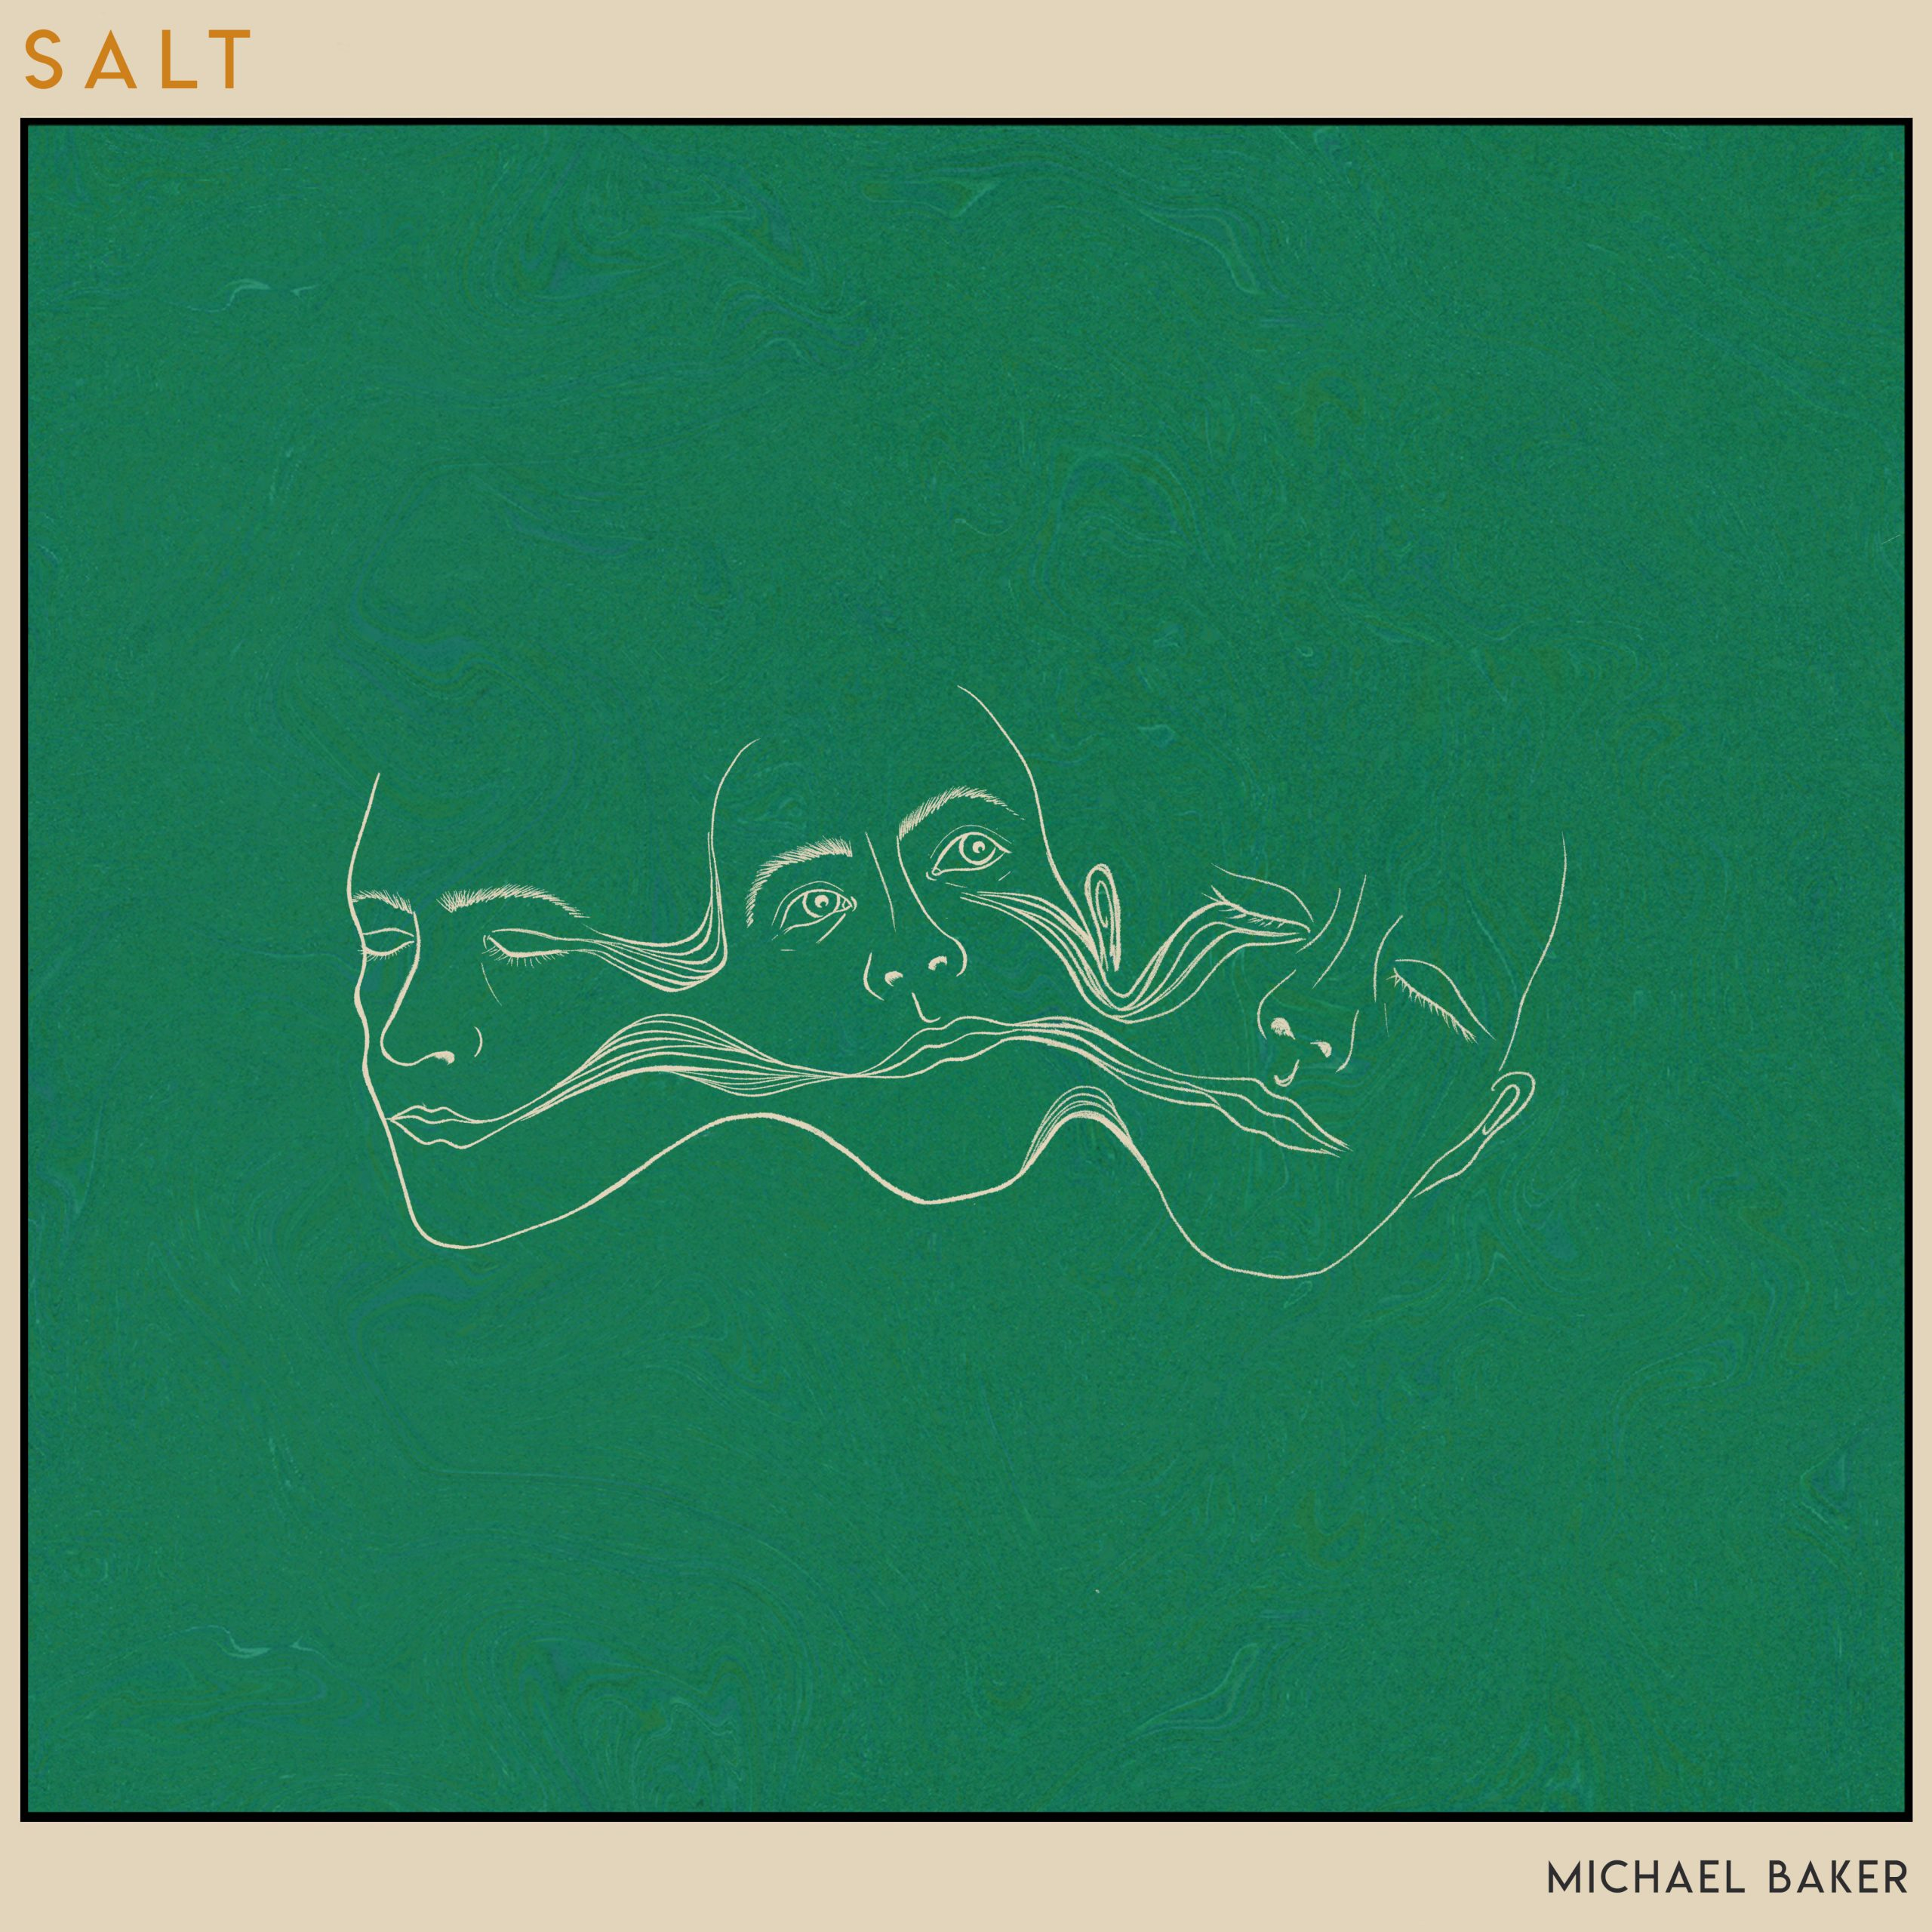 Michael Baker - Salt - Album Front Cover